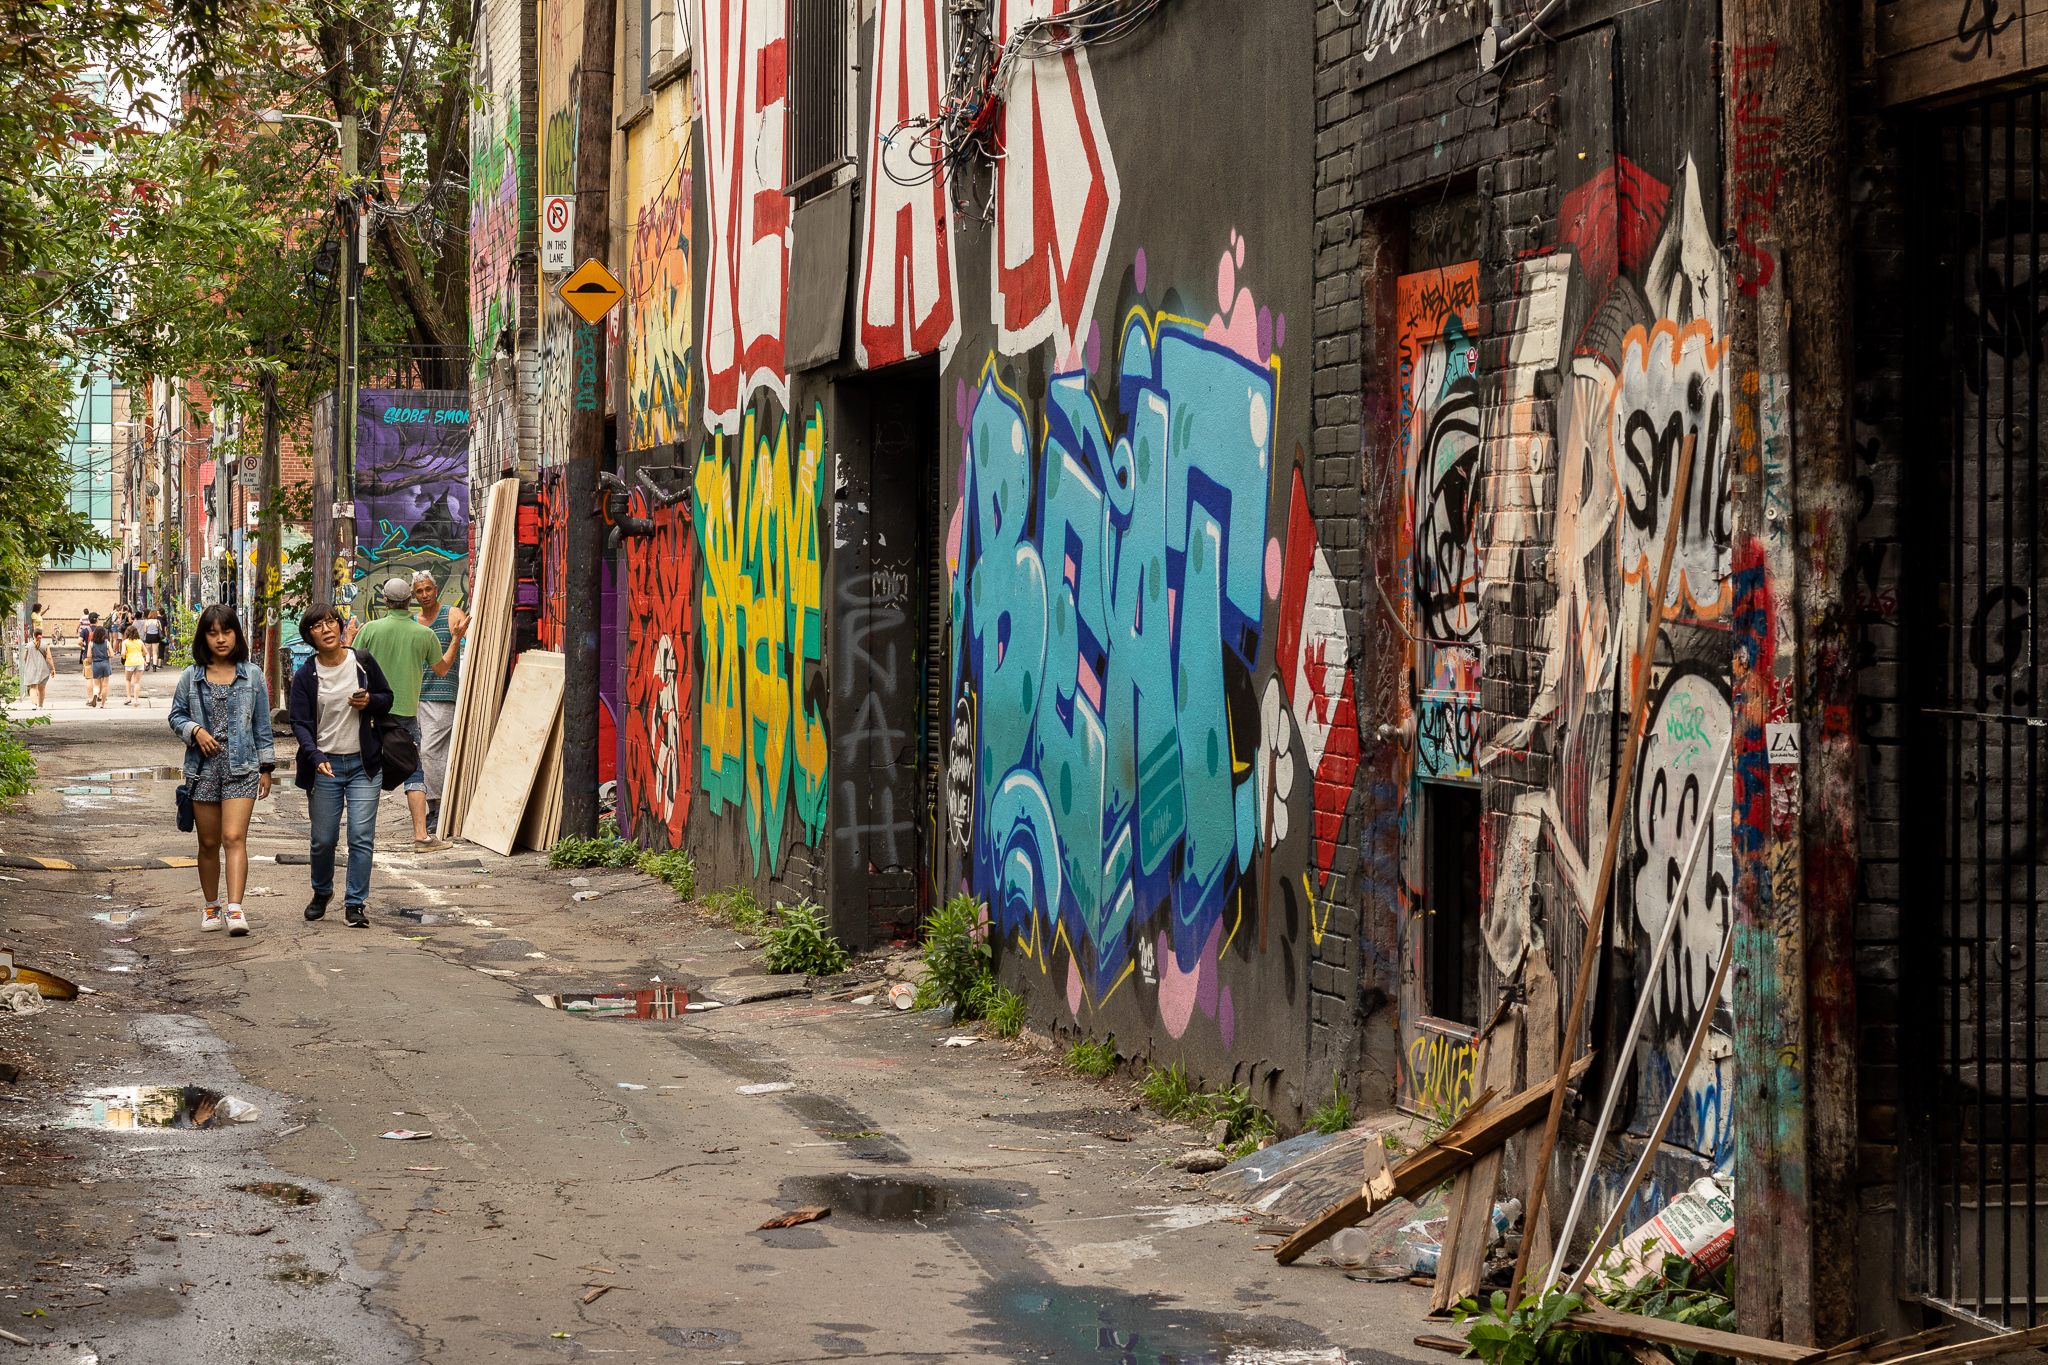 The Graffiti Alley - here the street art is legal and attracts many tourists.